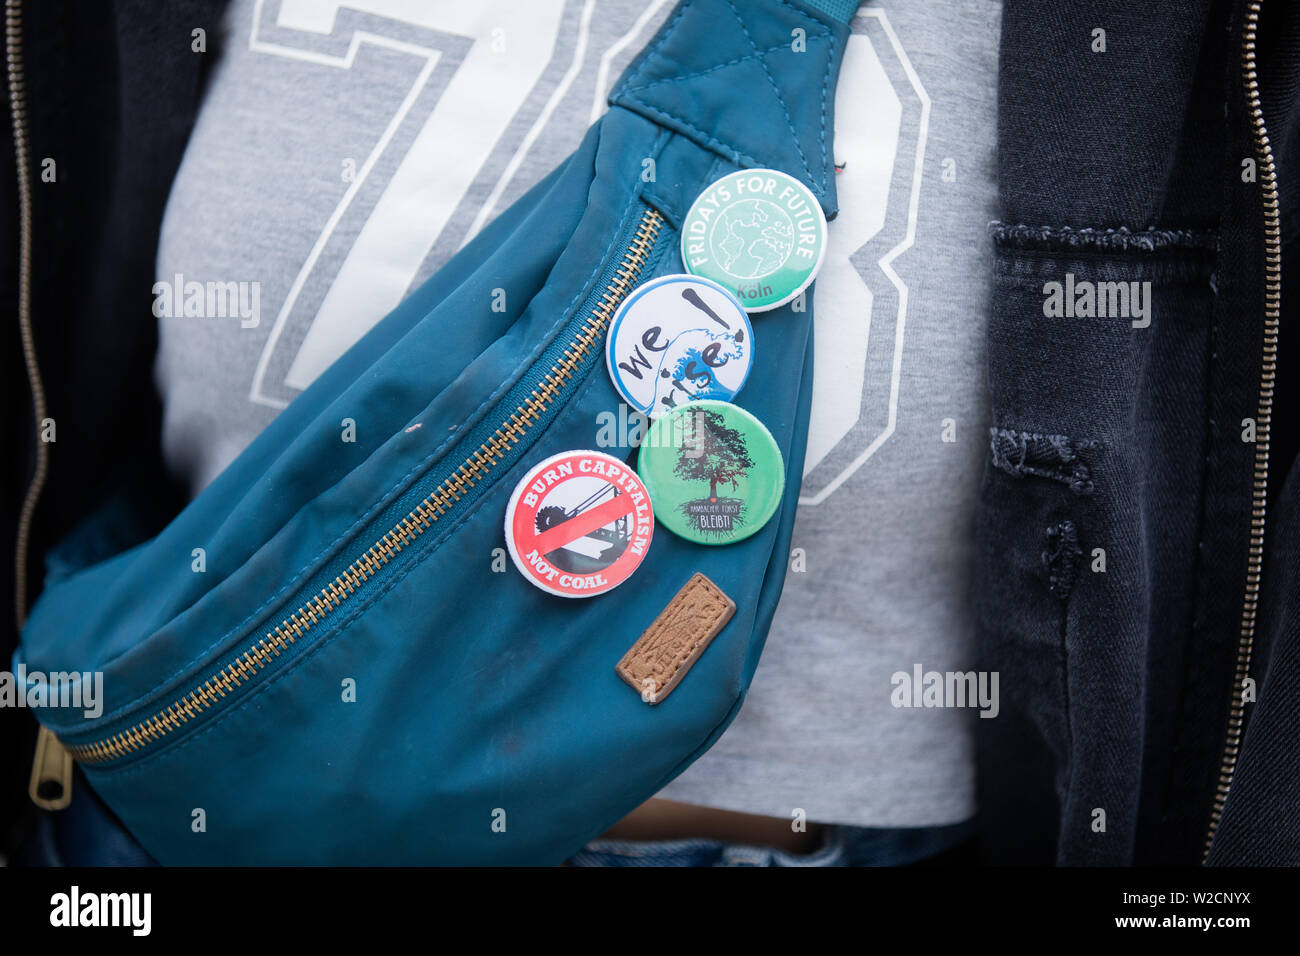 7b2c37d3 At a Fridays for Future demonstration in front of the main ...